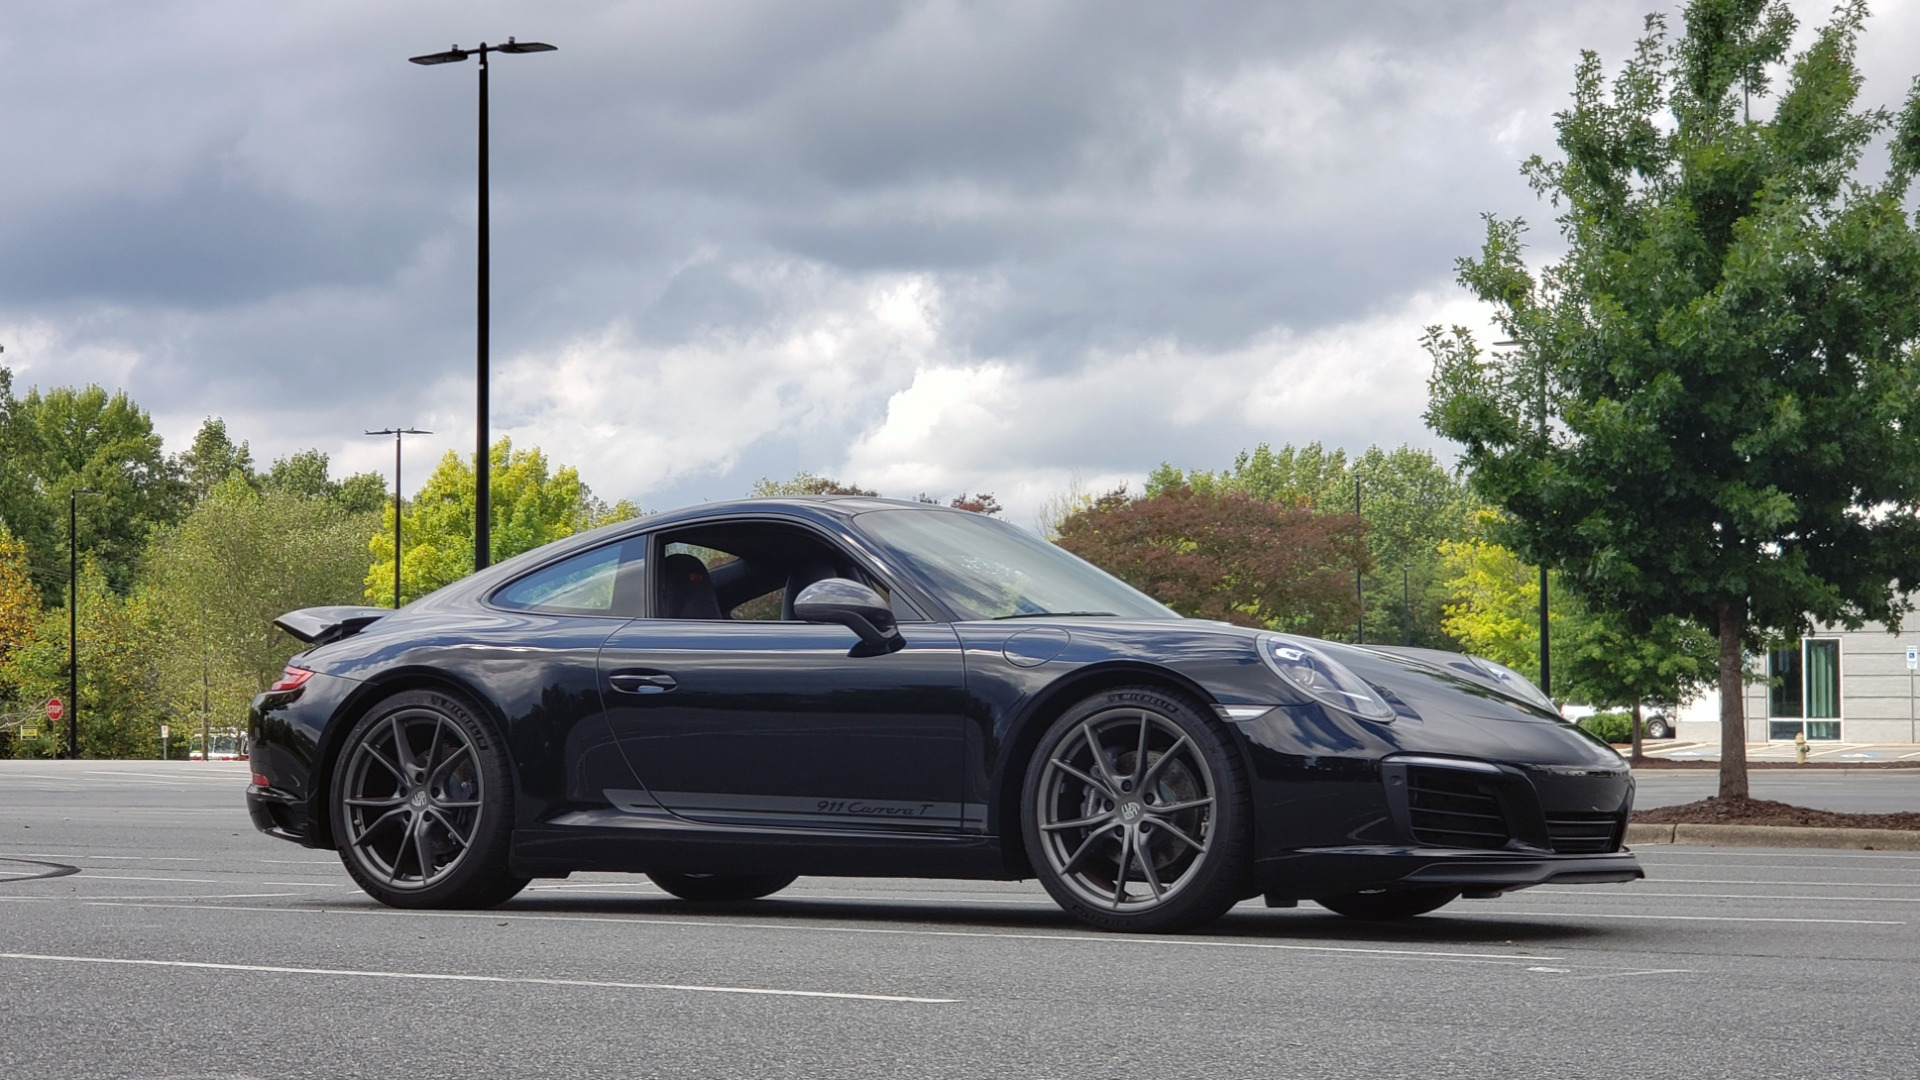 Used 2019 Porsche 911 CARRERA T / 3.0L H6 / MANUAL / PREMIUM / NAV / BOSE / SUNROOF / REARVIEW for sale $117,000 at Formula Imports in Charlotte NC 28227 79